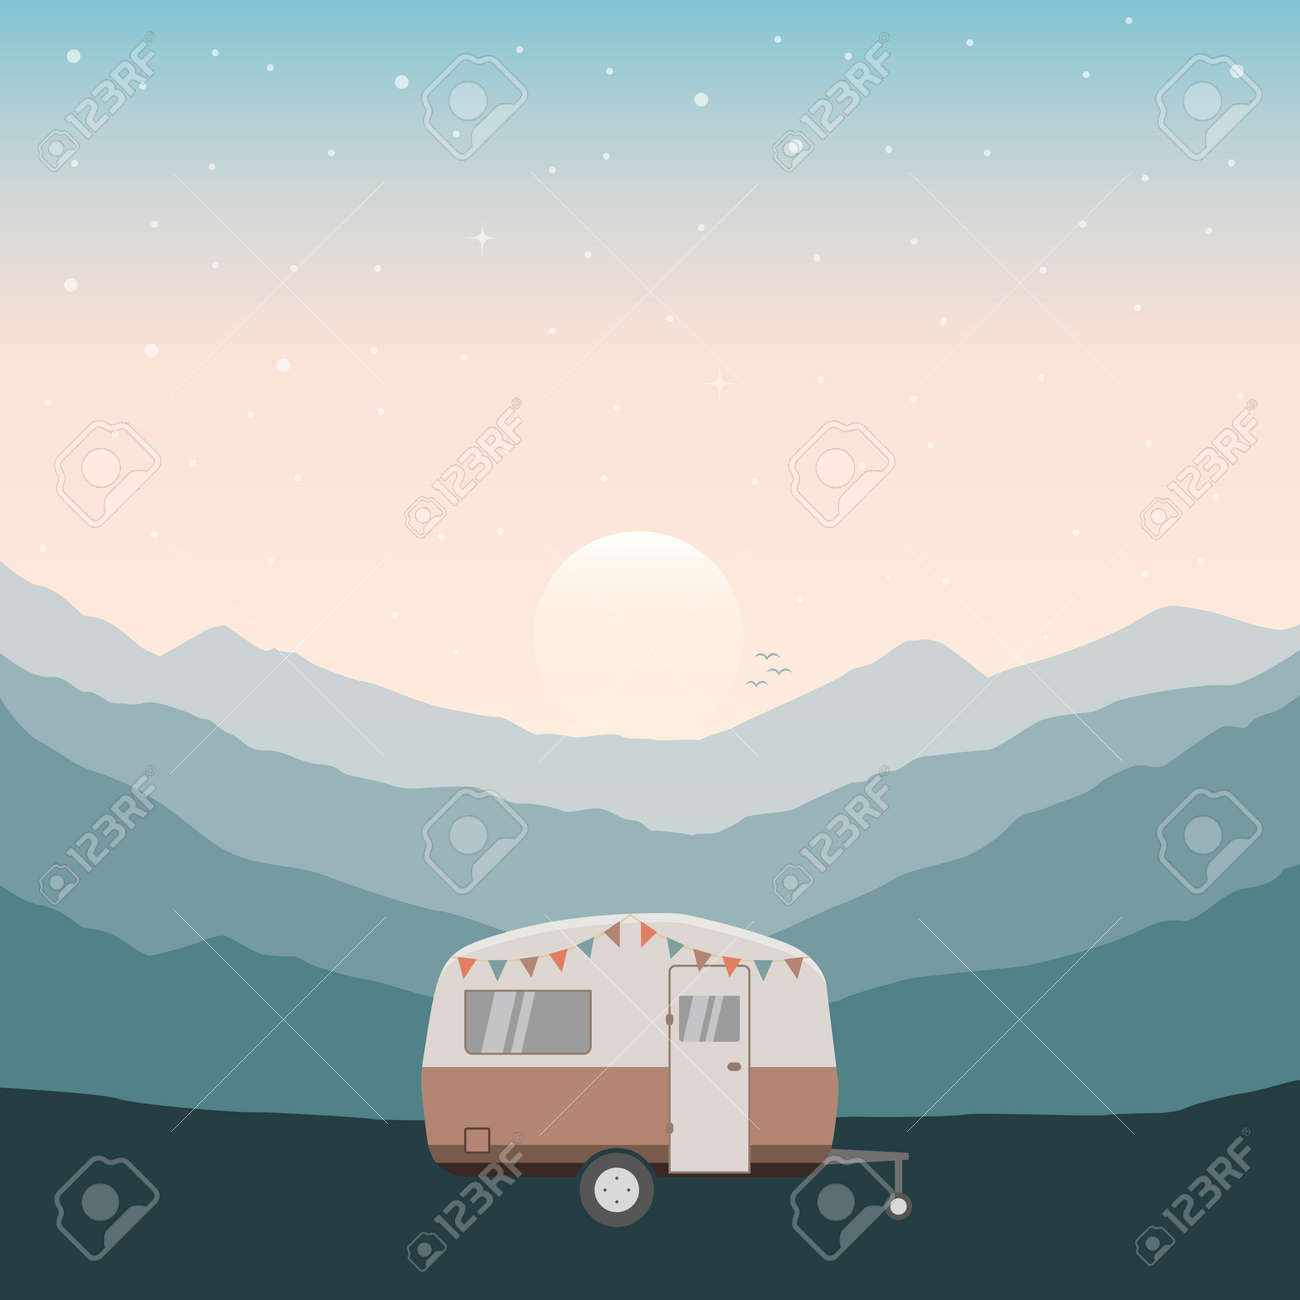 camper summer holiday on a road trip - 169841380